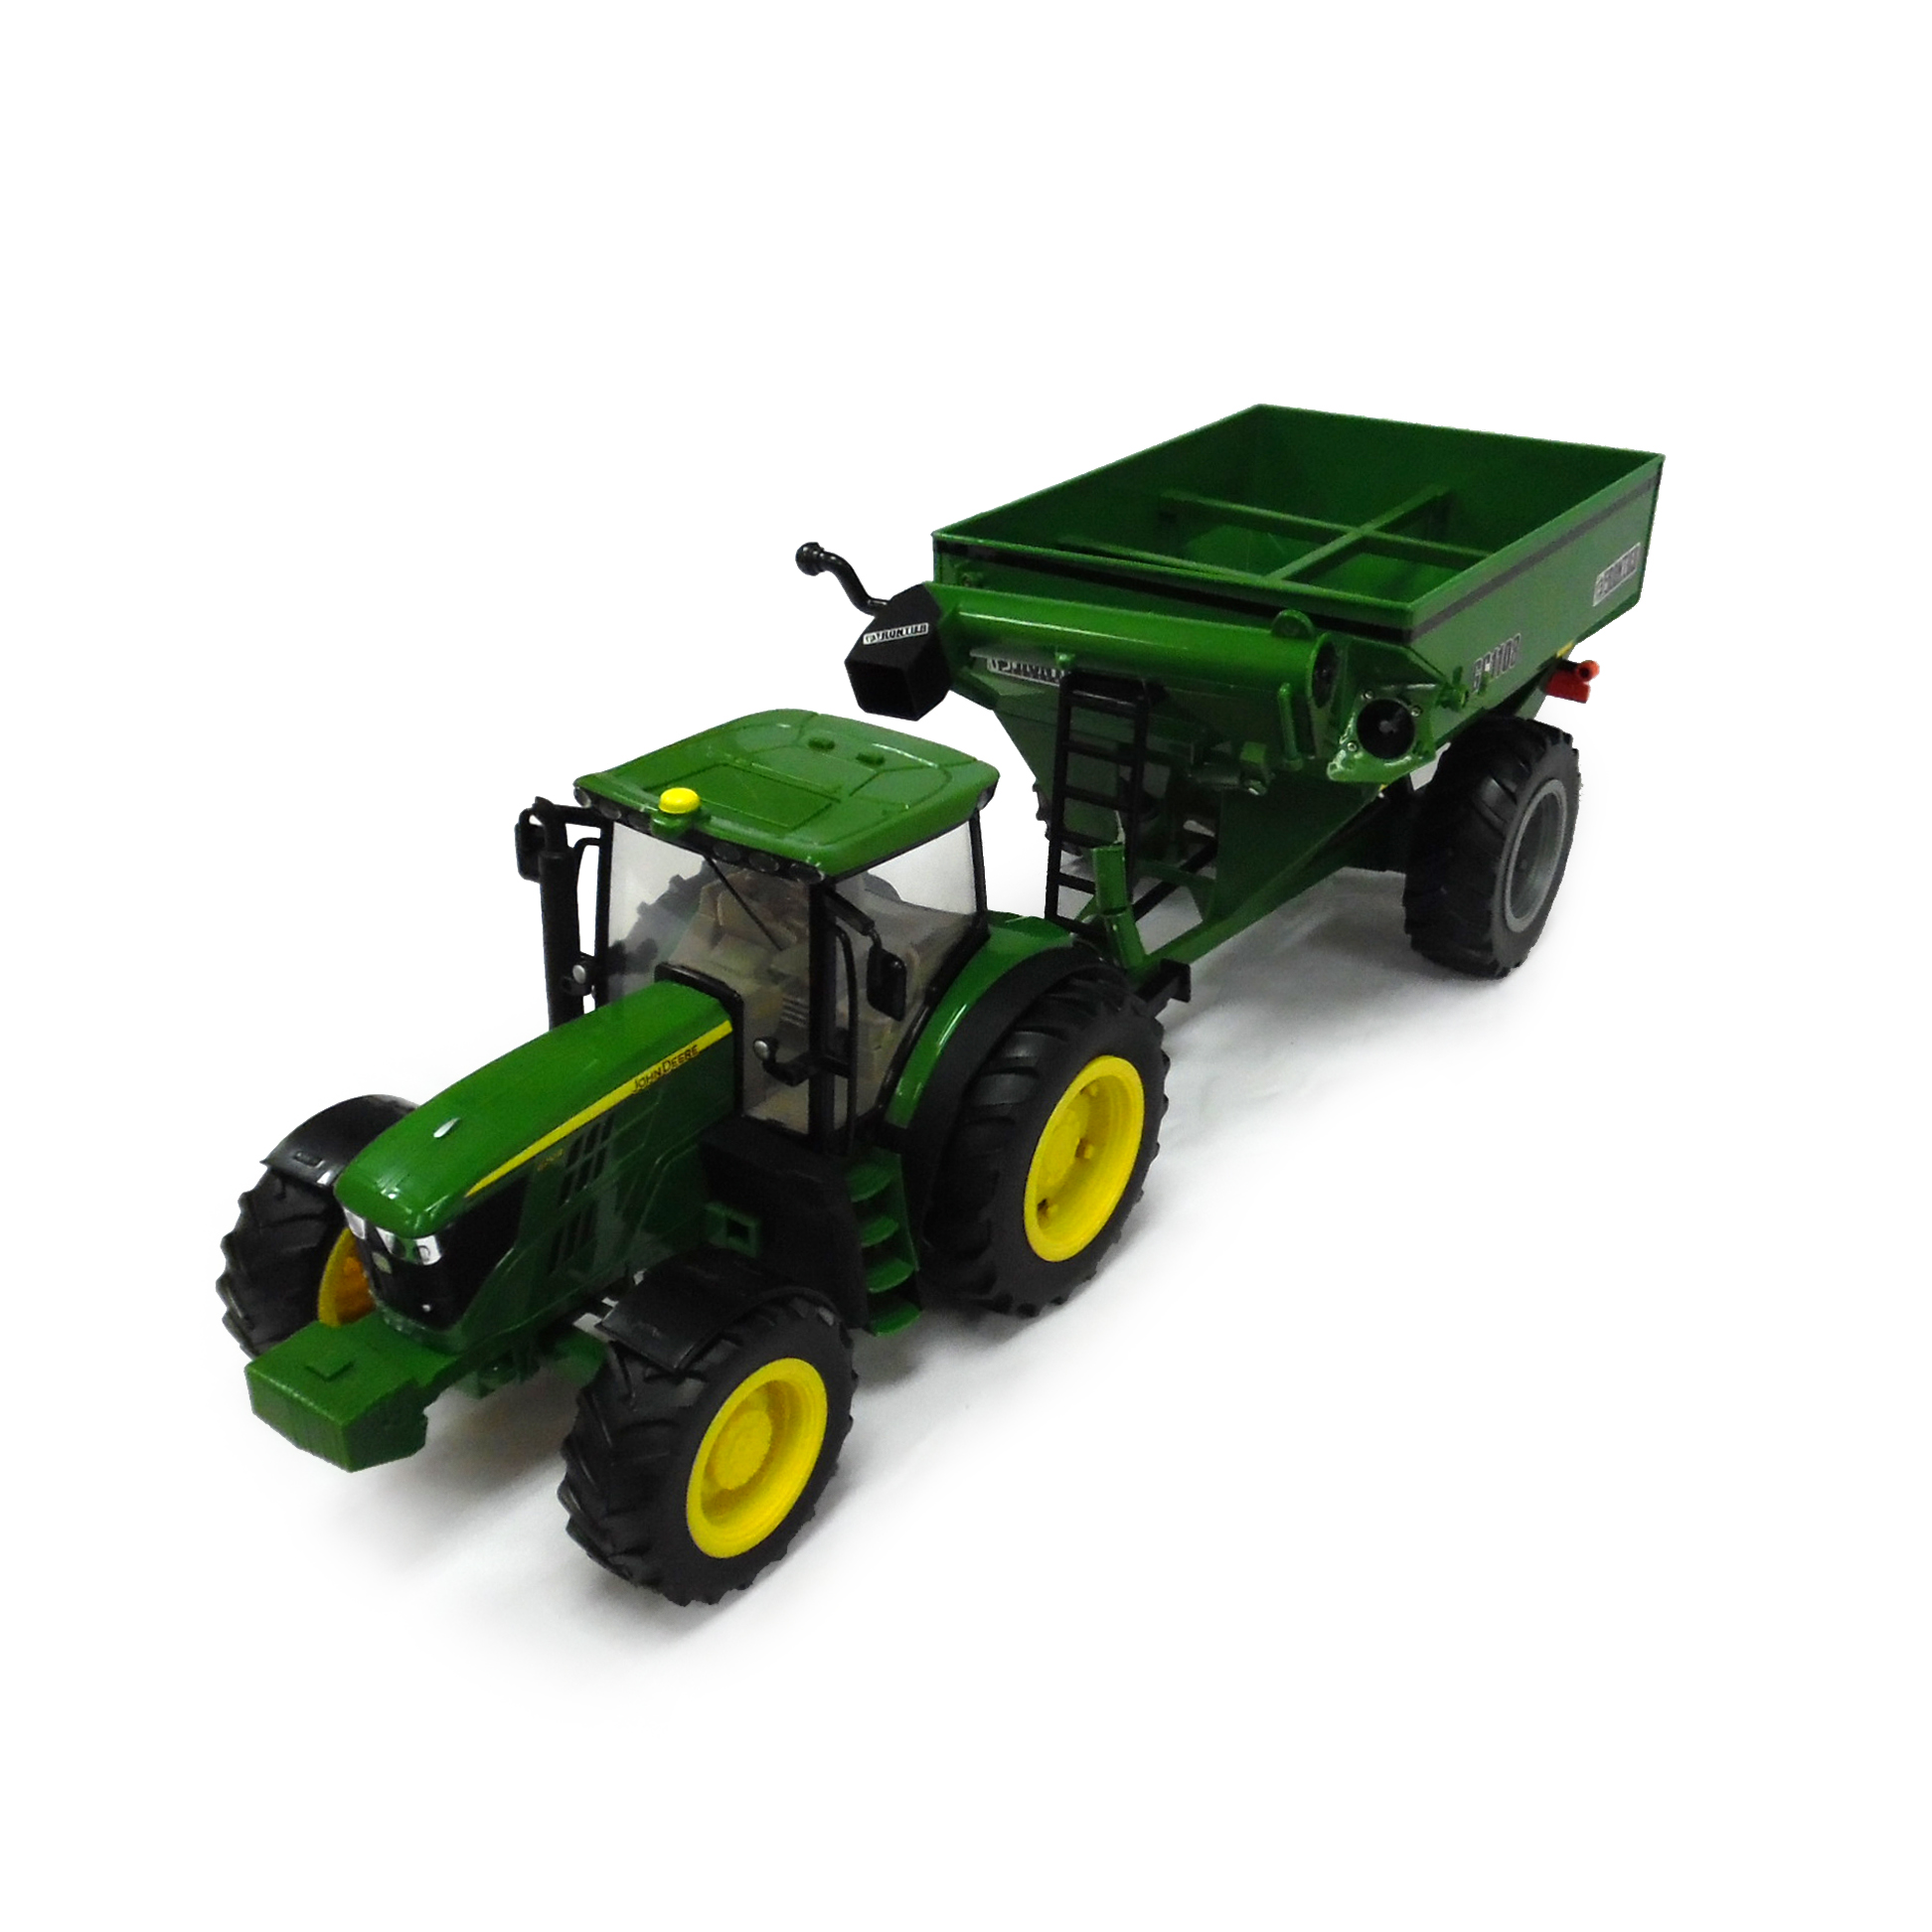 1:16 John Deere 6210R with grain cart